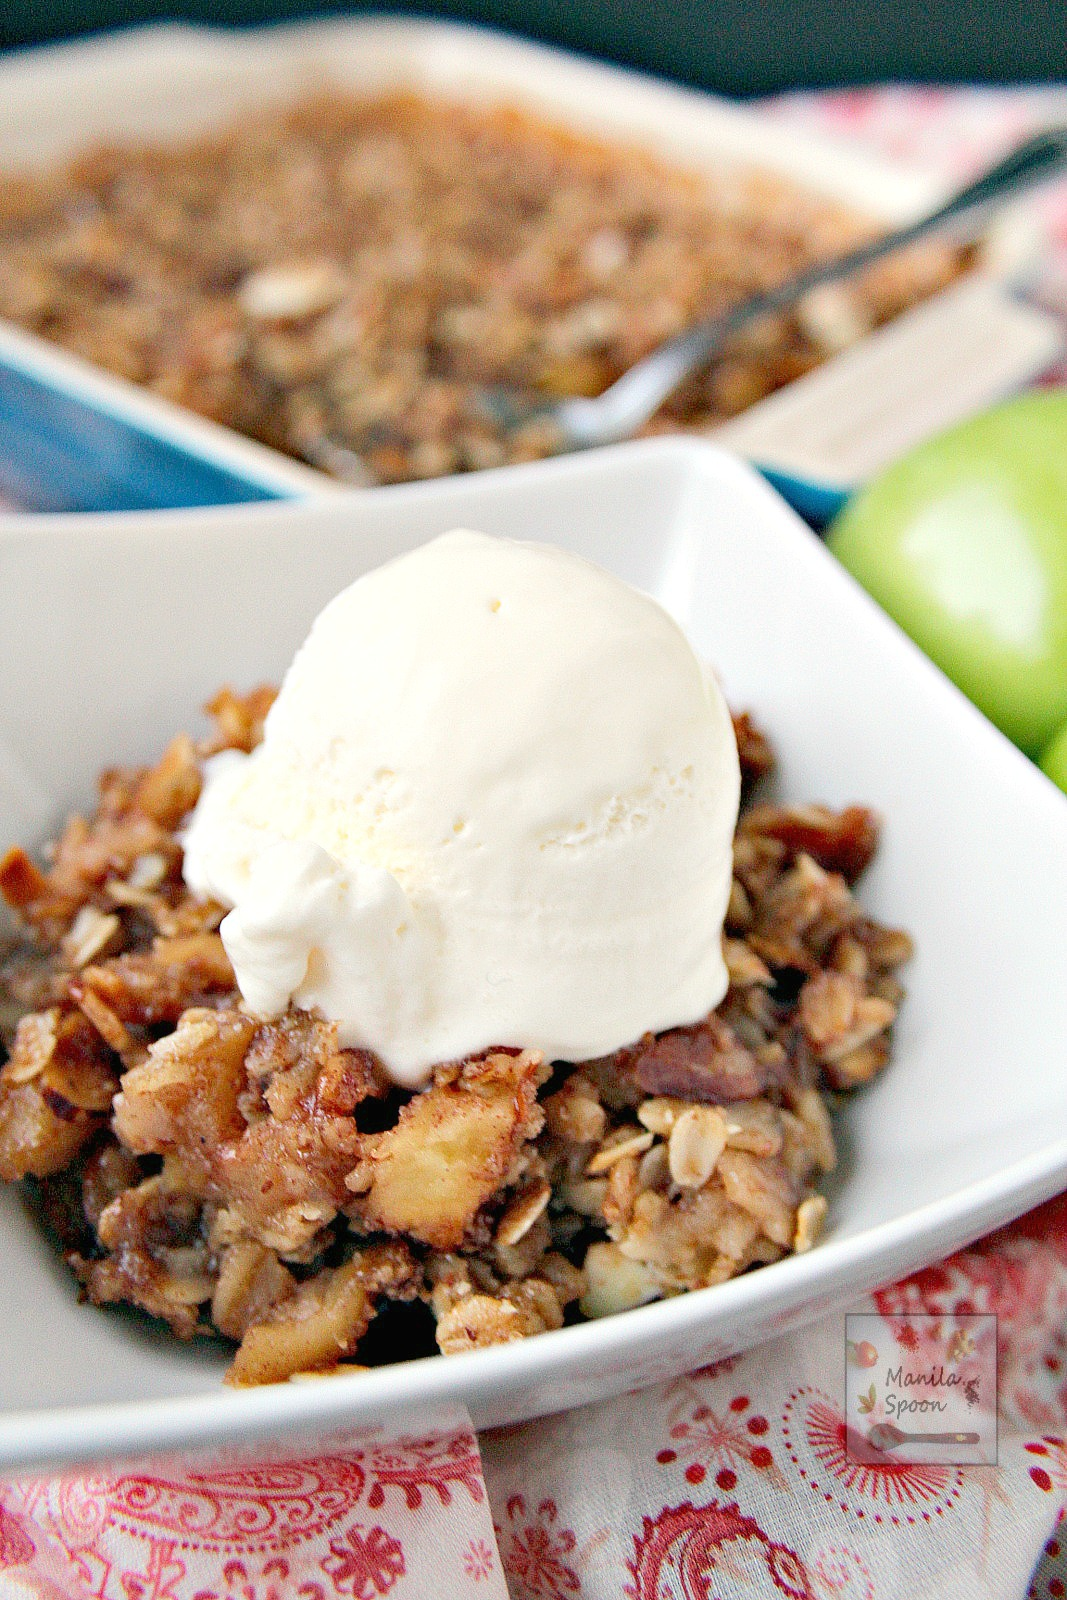 Sweet, fruity with a hint of lemony tang and perfectly spiced with cinnamon and nutmeg this Apple Crisp is simply the best! Completely gluten-free, too.